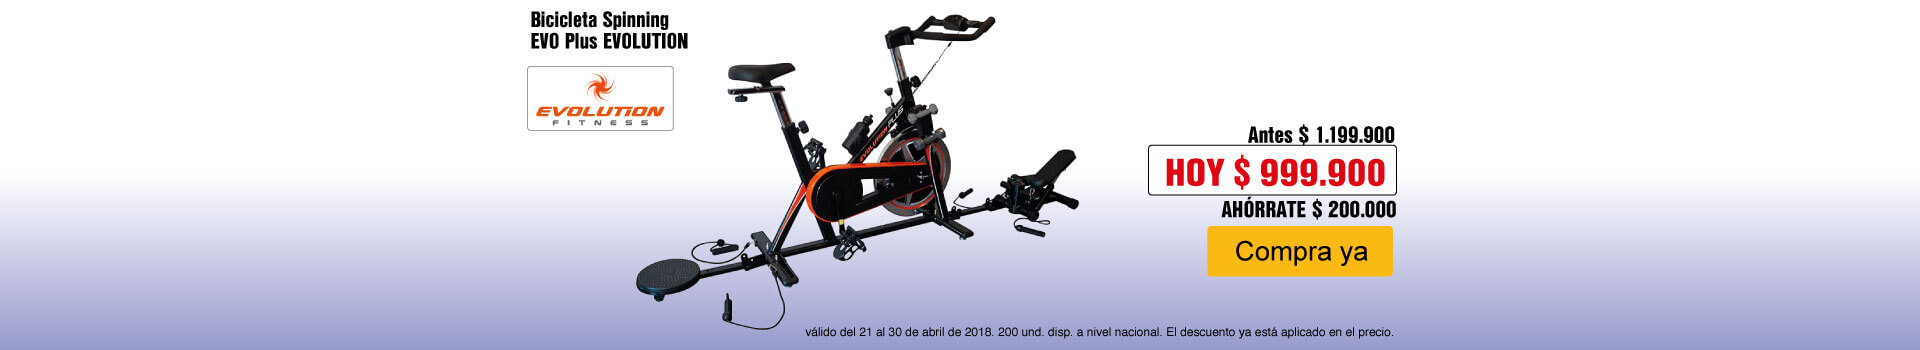 AK-BCAT-3-deportes -PP---Evolution-Spinning-EVO-Plus-Abr21